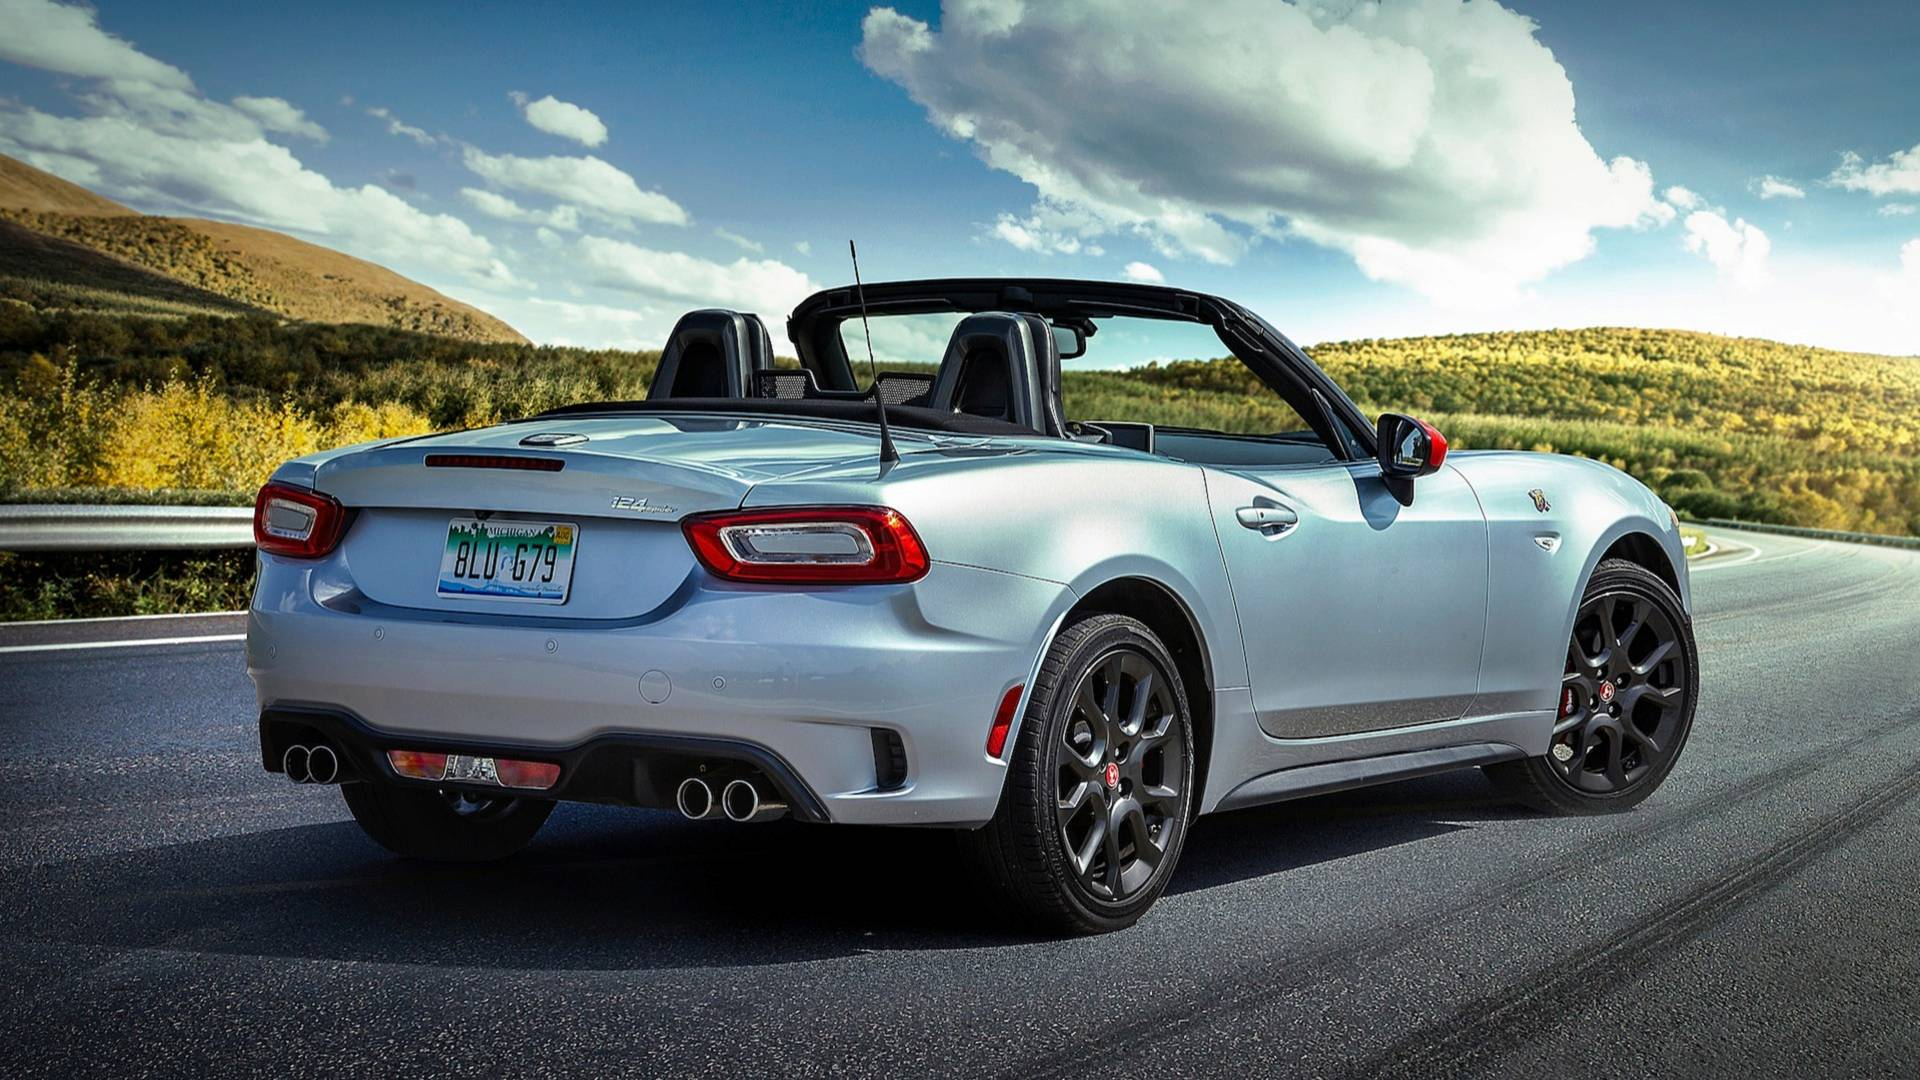 The Fiat 124 Spider – a 2015 roadster with a retro vibe and an iconic name – leaves the European markets even before its planned mid-generational refresh could attempt to save it.